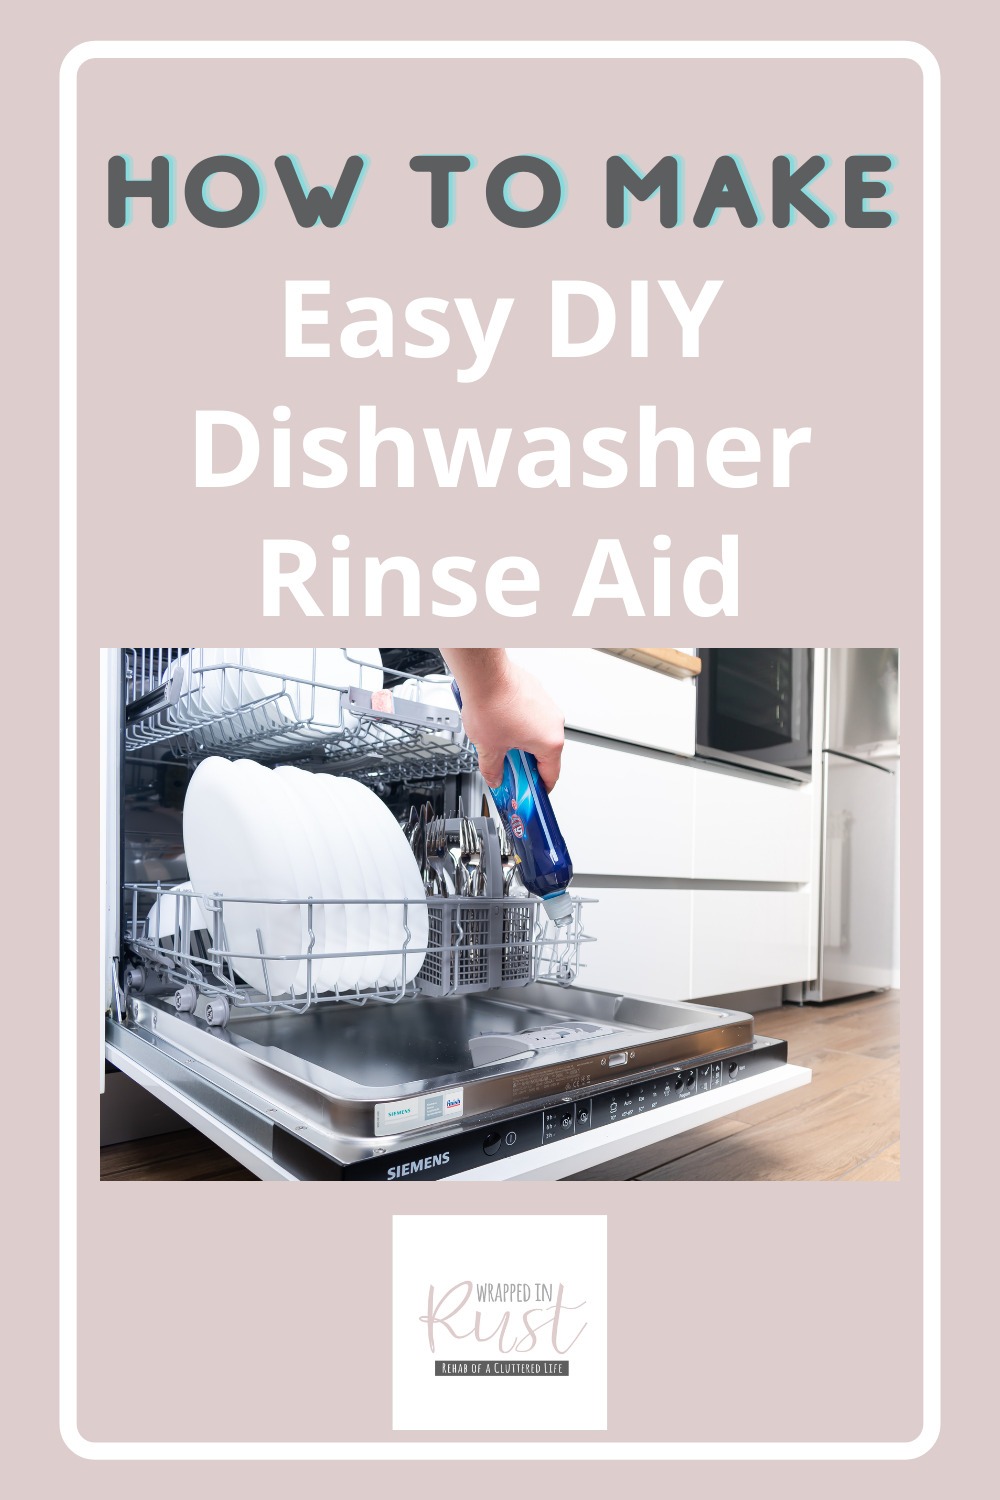 Wrappedinrust.com is the best place to find cleaning and organization ideas you'll love. Don't miss out on the latest tricks for making mess-free living a breeze! Learn how you can make your own cleaners, like this DIY dishwasher rinse aid!